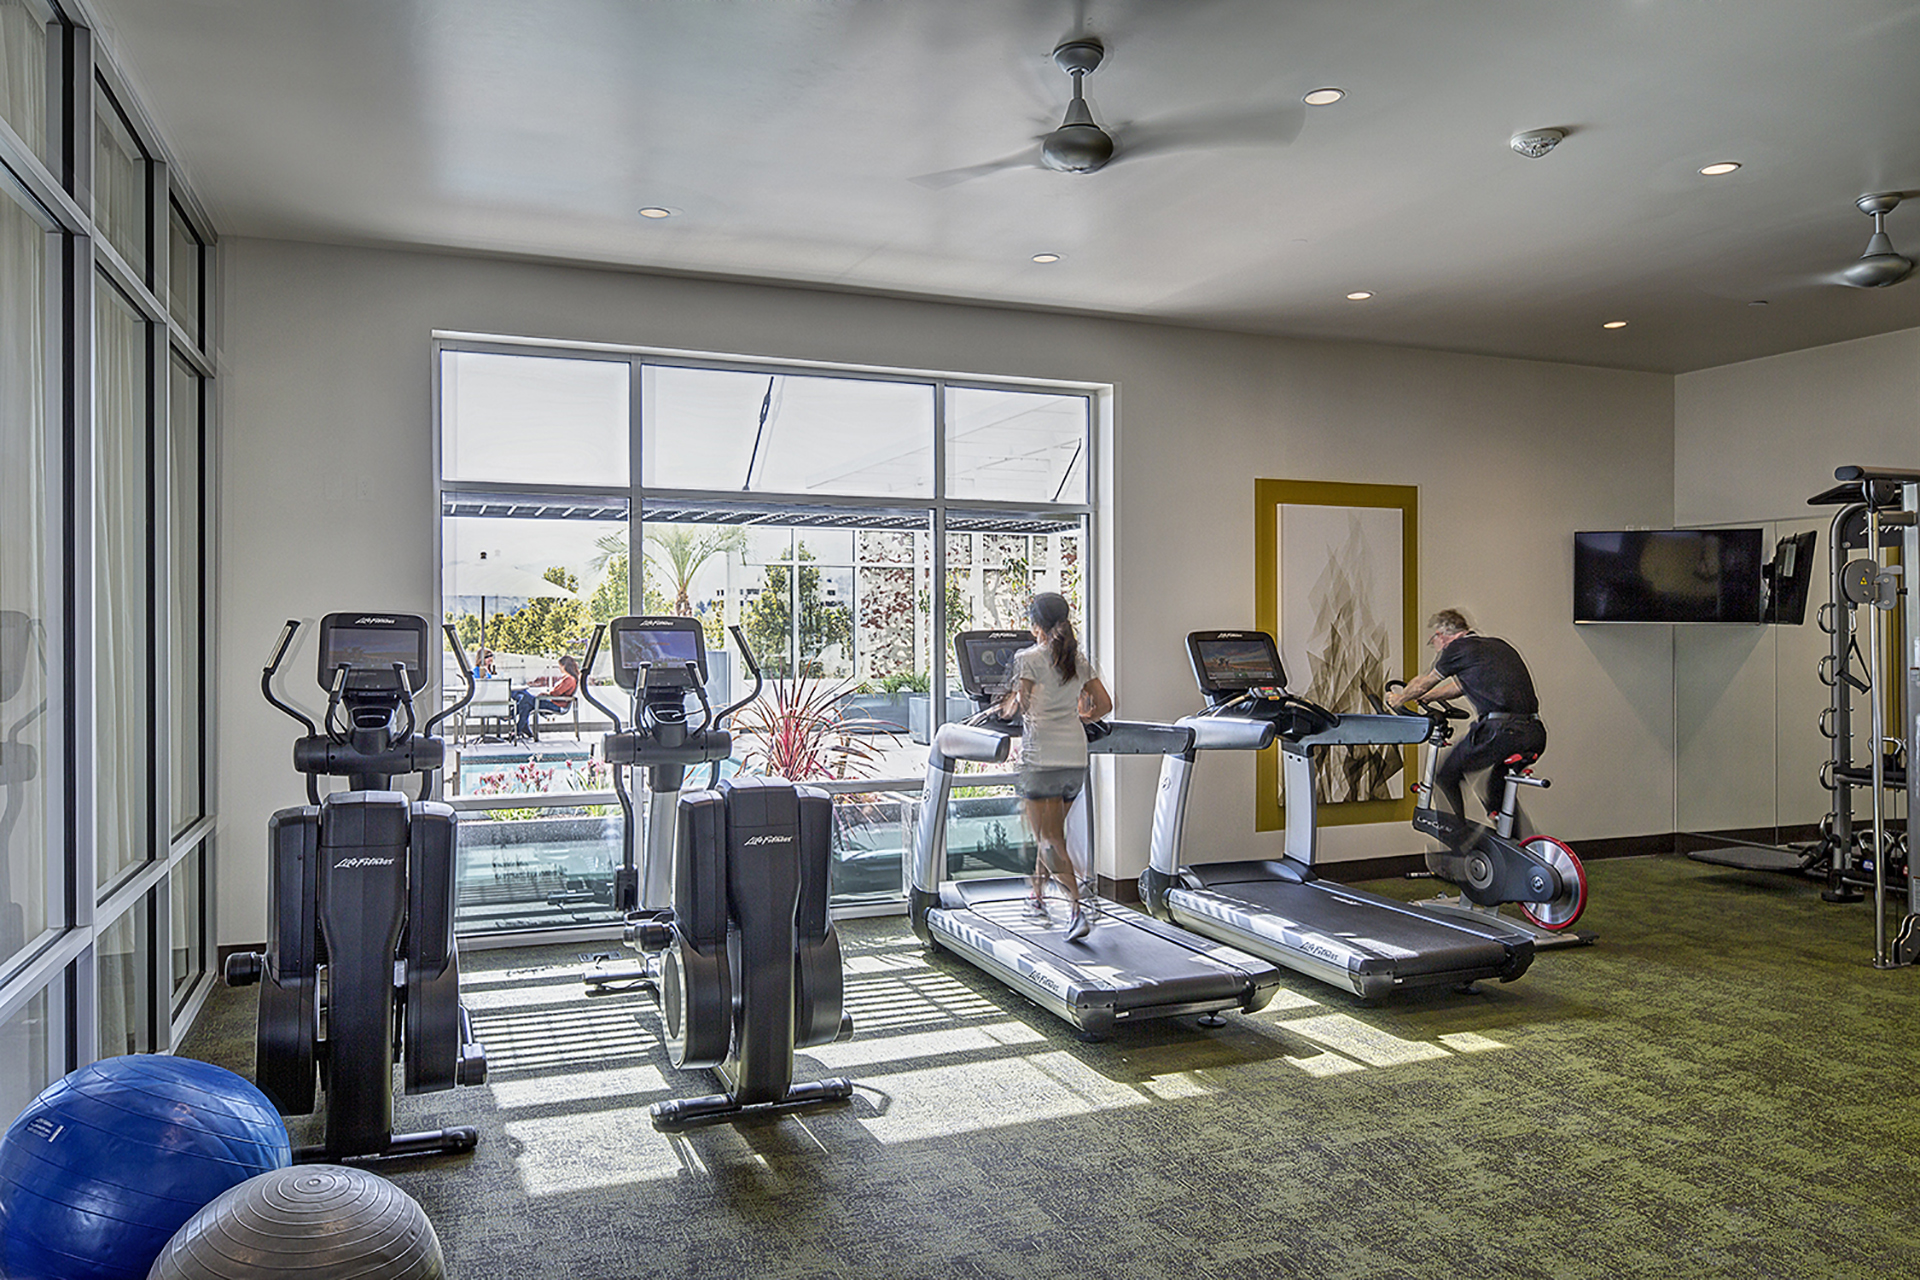 Gym at Ave Walnut Creek Apartments